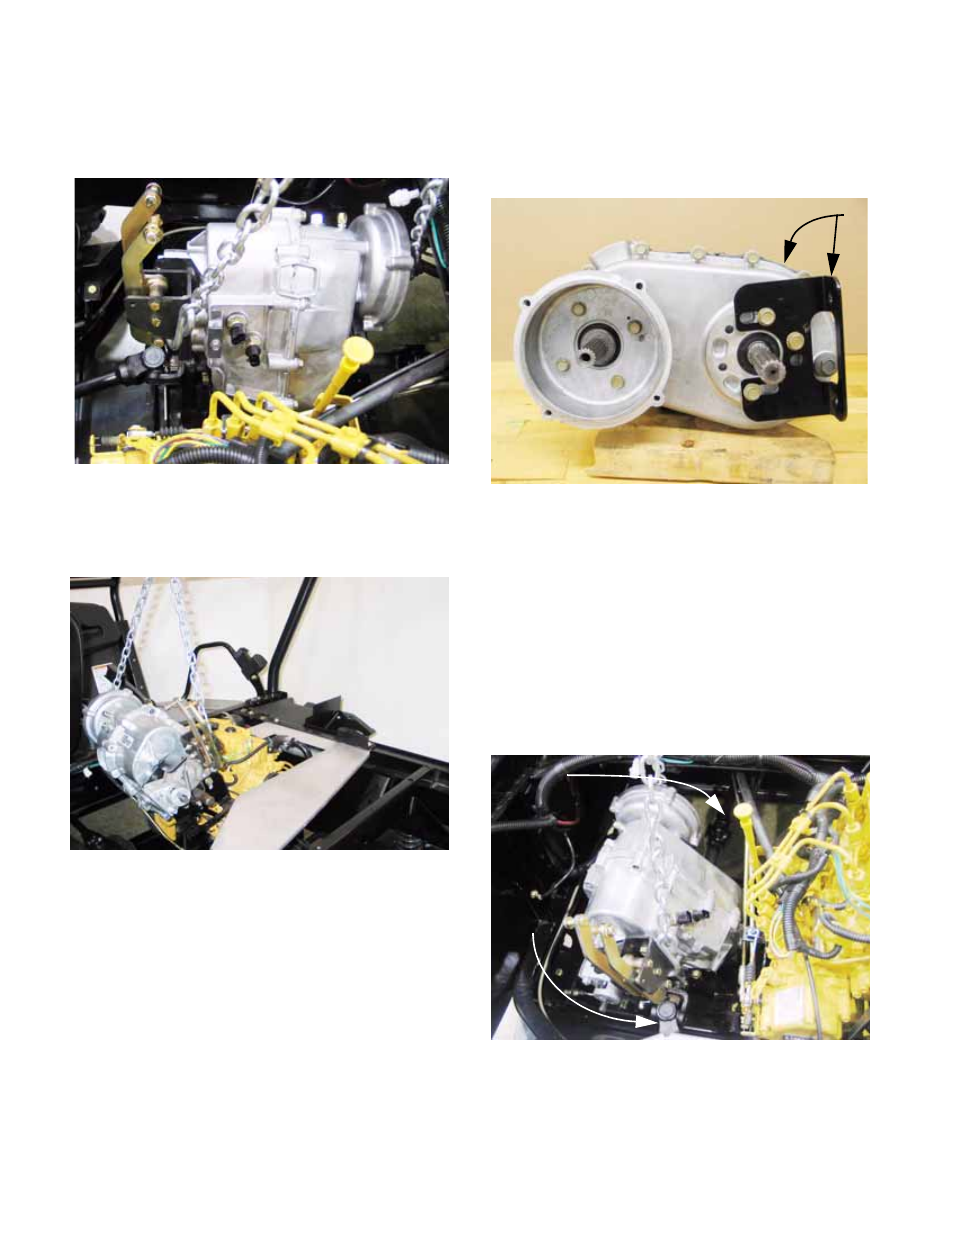 Chapter 2 Drive System Cvt And Transfer Case Cub Cadet 4 X Wiring Harness Volunteer User Manual Page 38 328